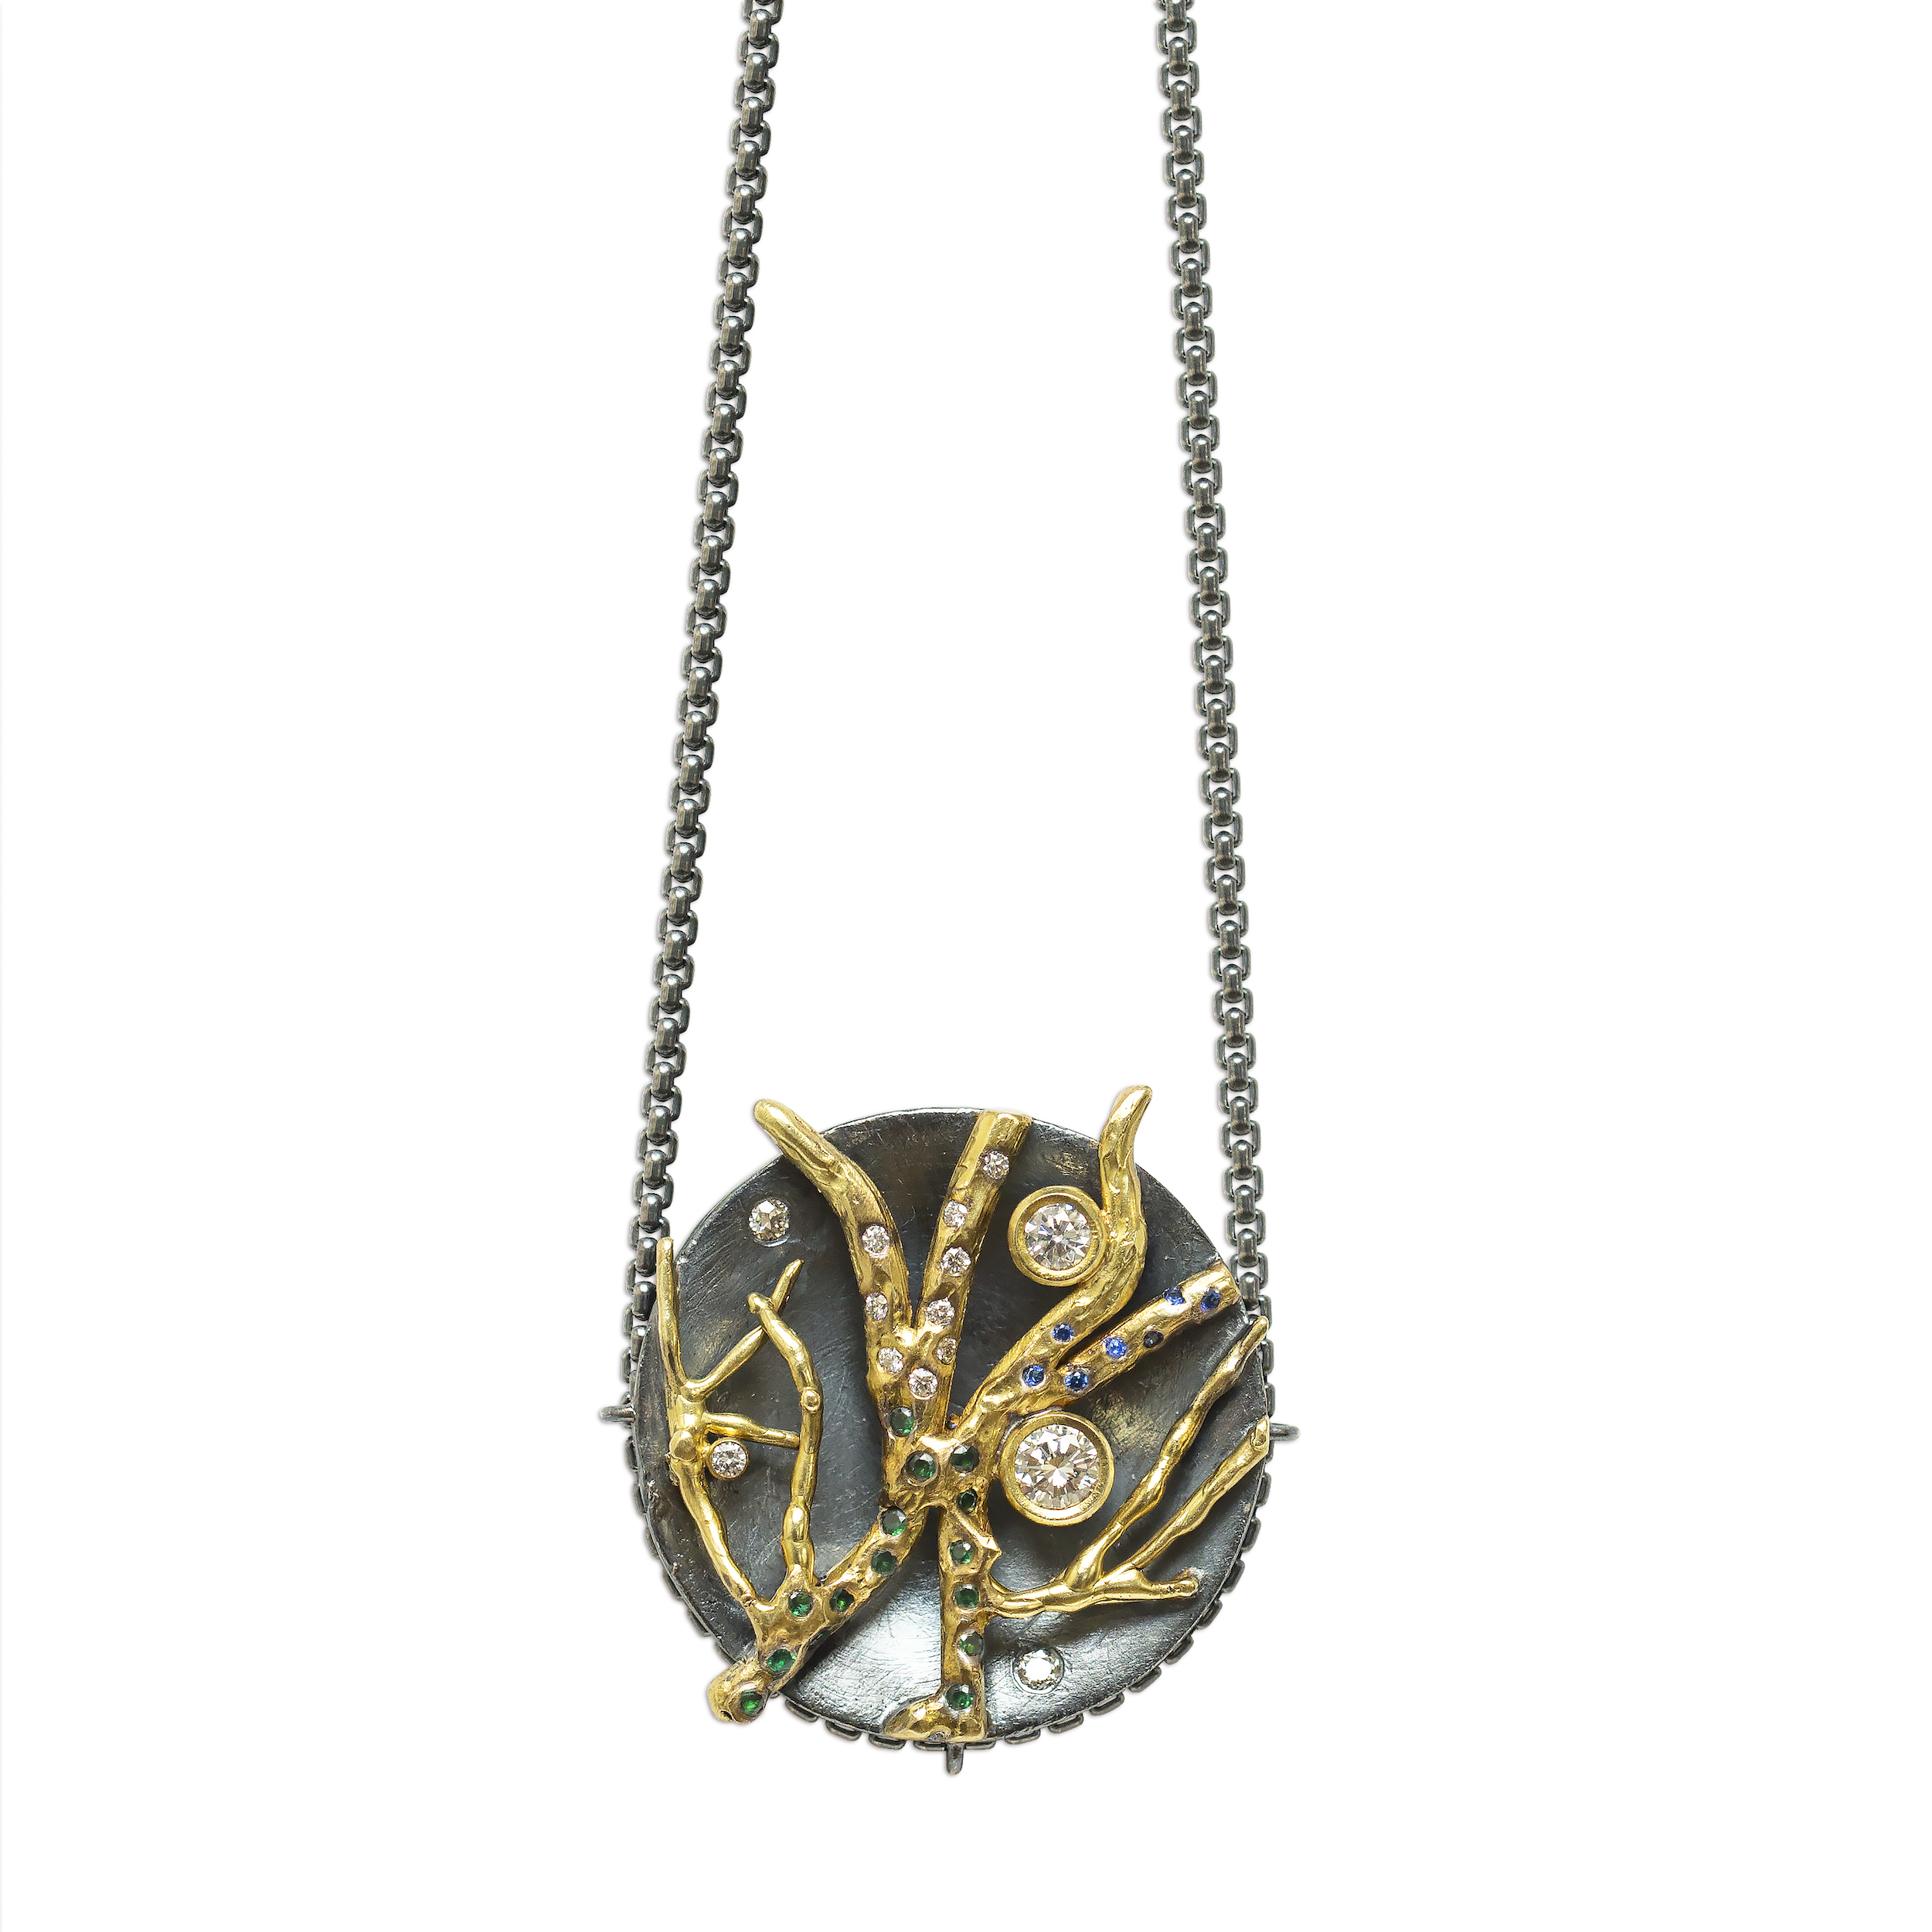 sterling silver concave top pulley with 18k gold branches |                                                         brilliant white diamonds, sapphires and emeralds